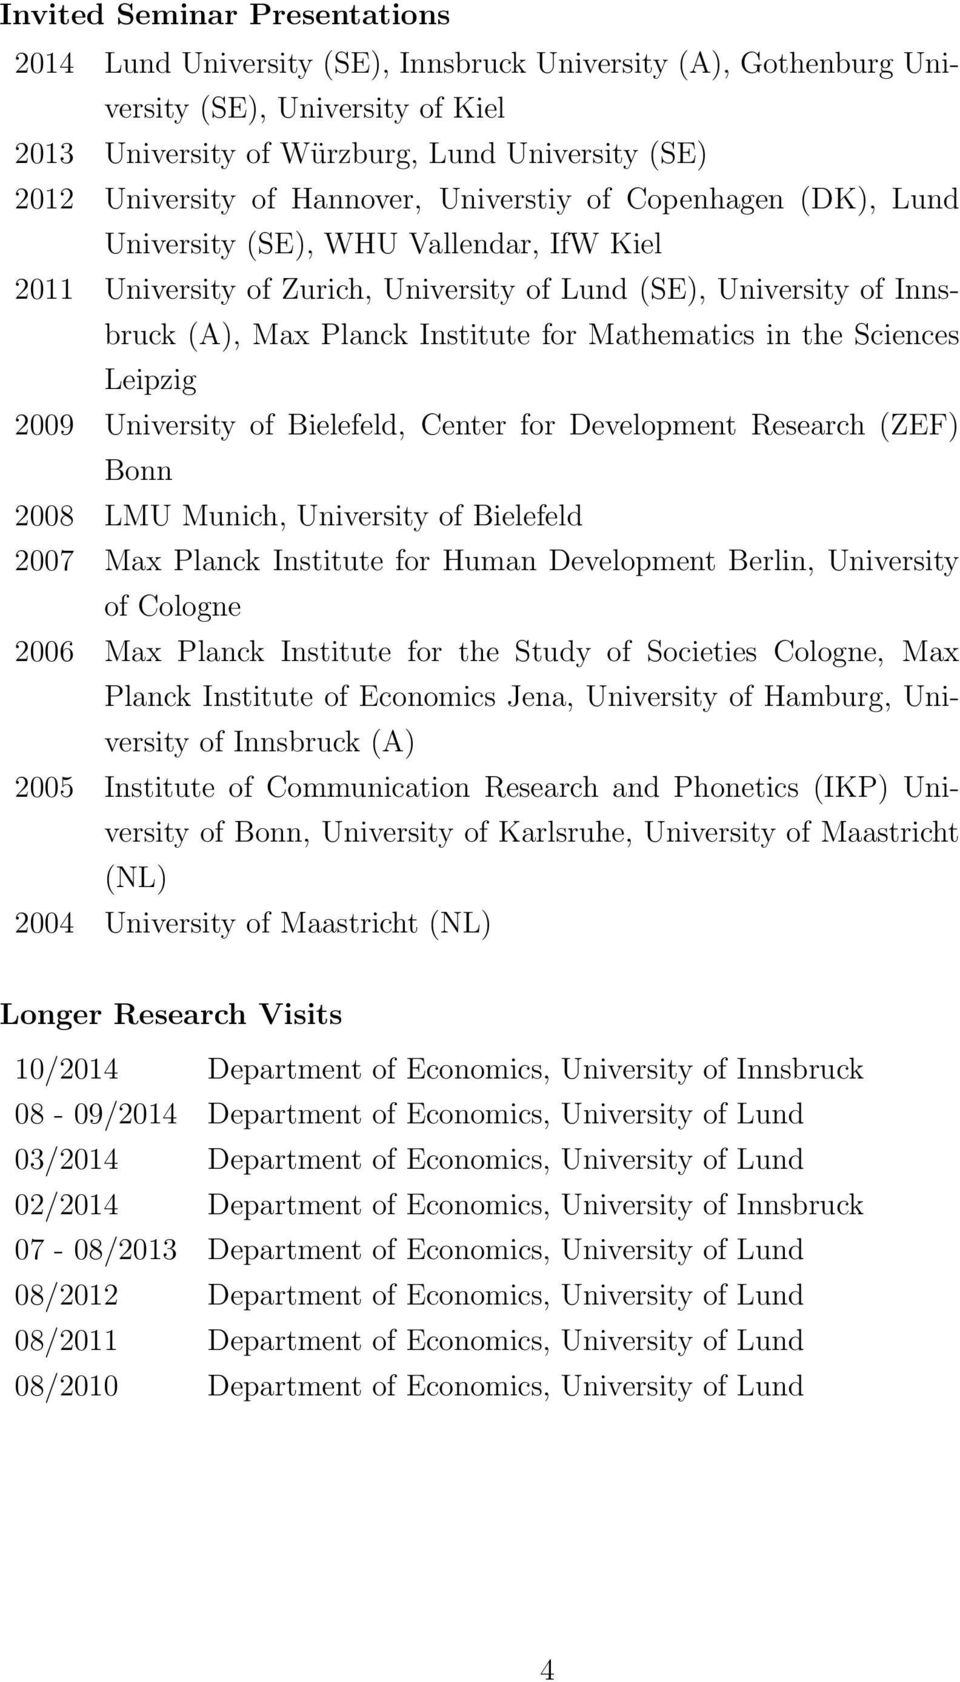 Mathematics in the Sciences Leipzig 2009 University of Bielefeld, Center for Development Research (ZEF) Bonn 2008 LMU Munich, University of Bielefeld 2007 Max Planck Institute for Human Development